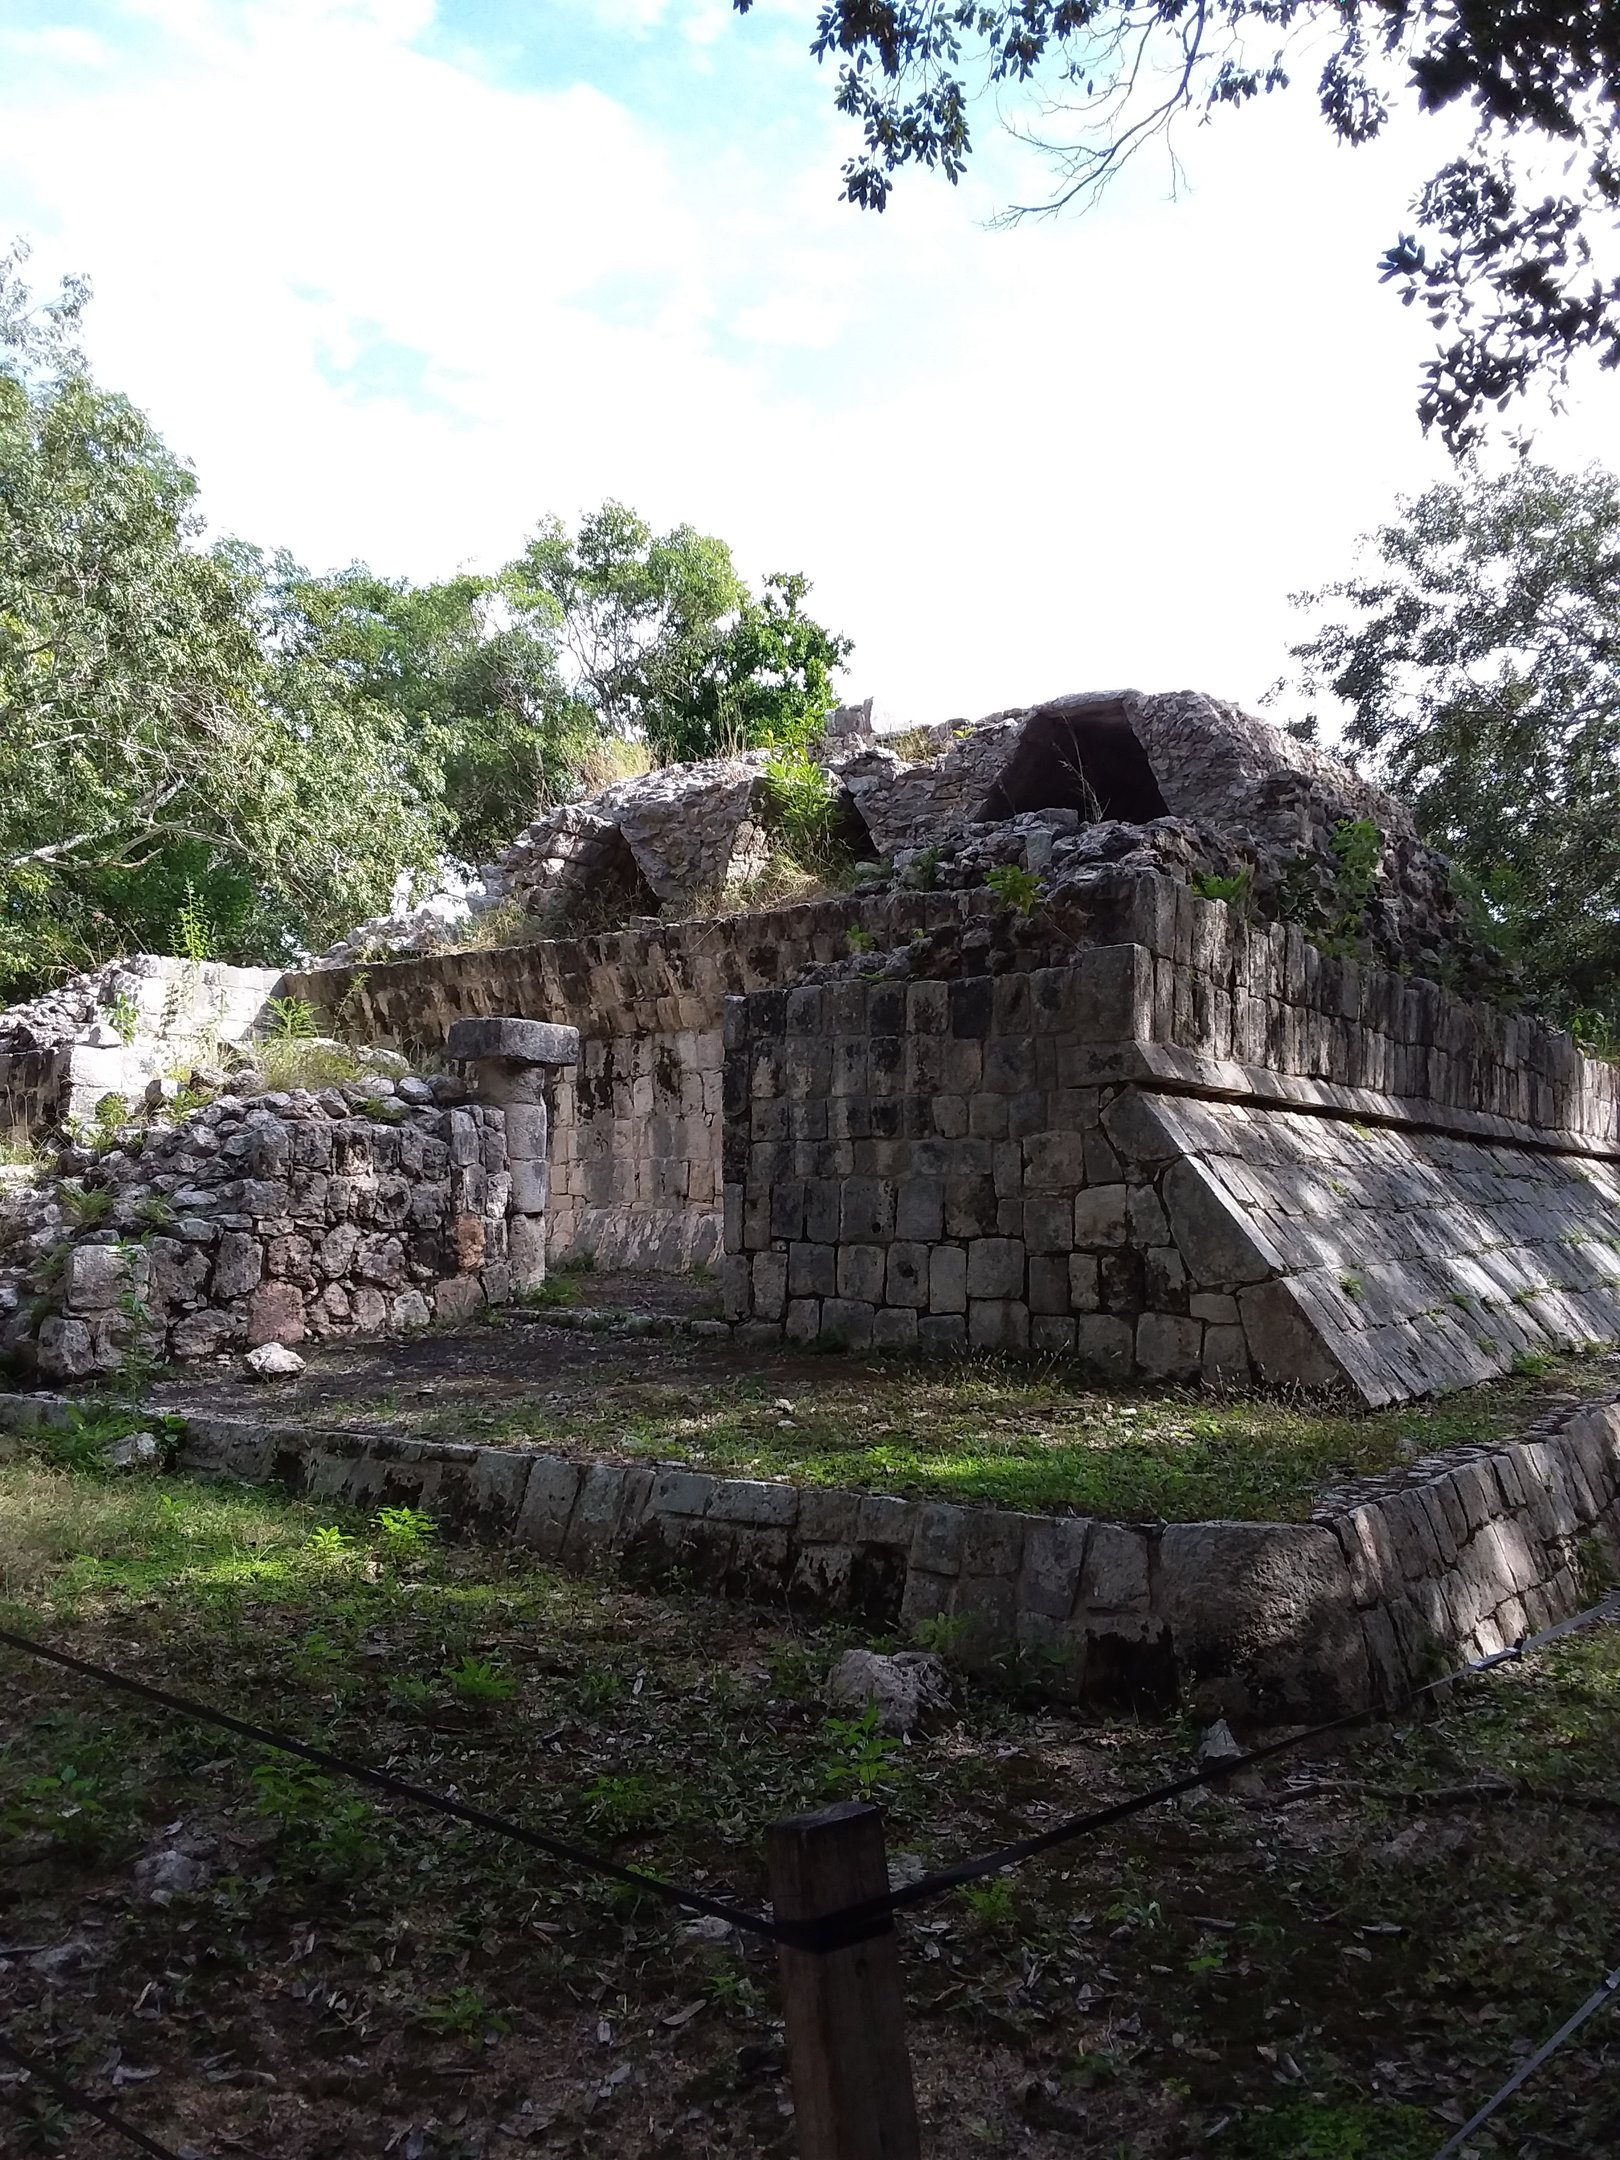 20181224_084249-jpg.48207_Chichen Itza (Not So Much a Story Than It Is Pictures)_Travel Stories_Squat the Planet_4:02 PM